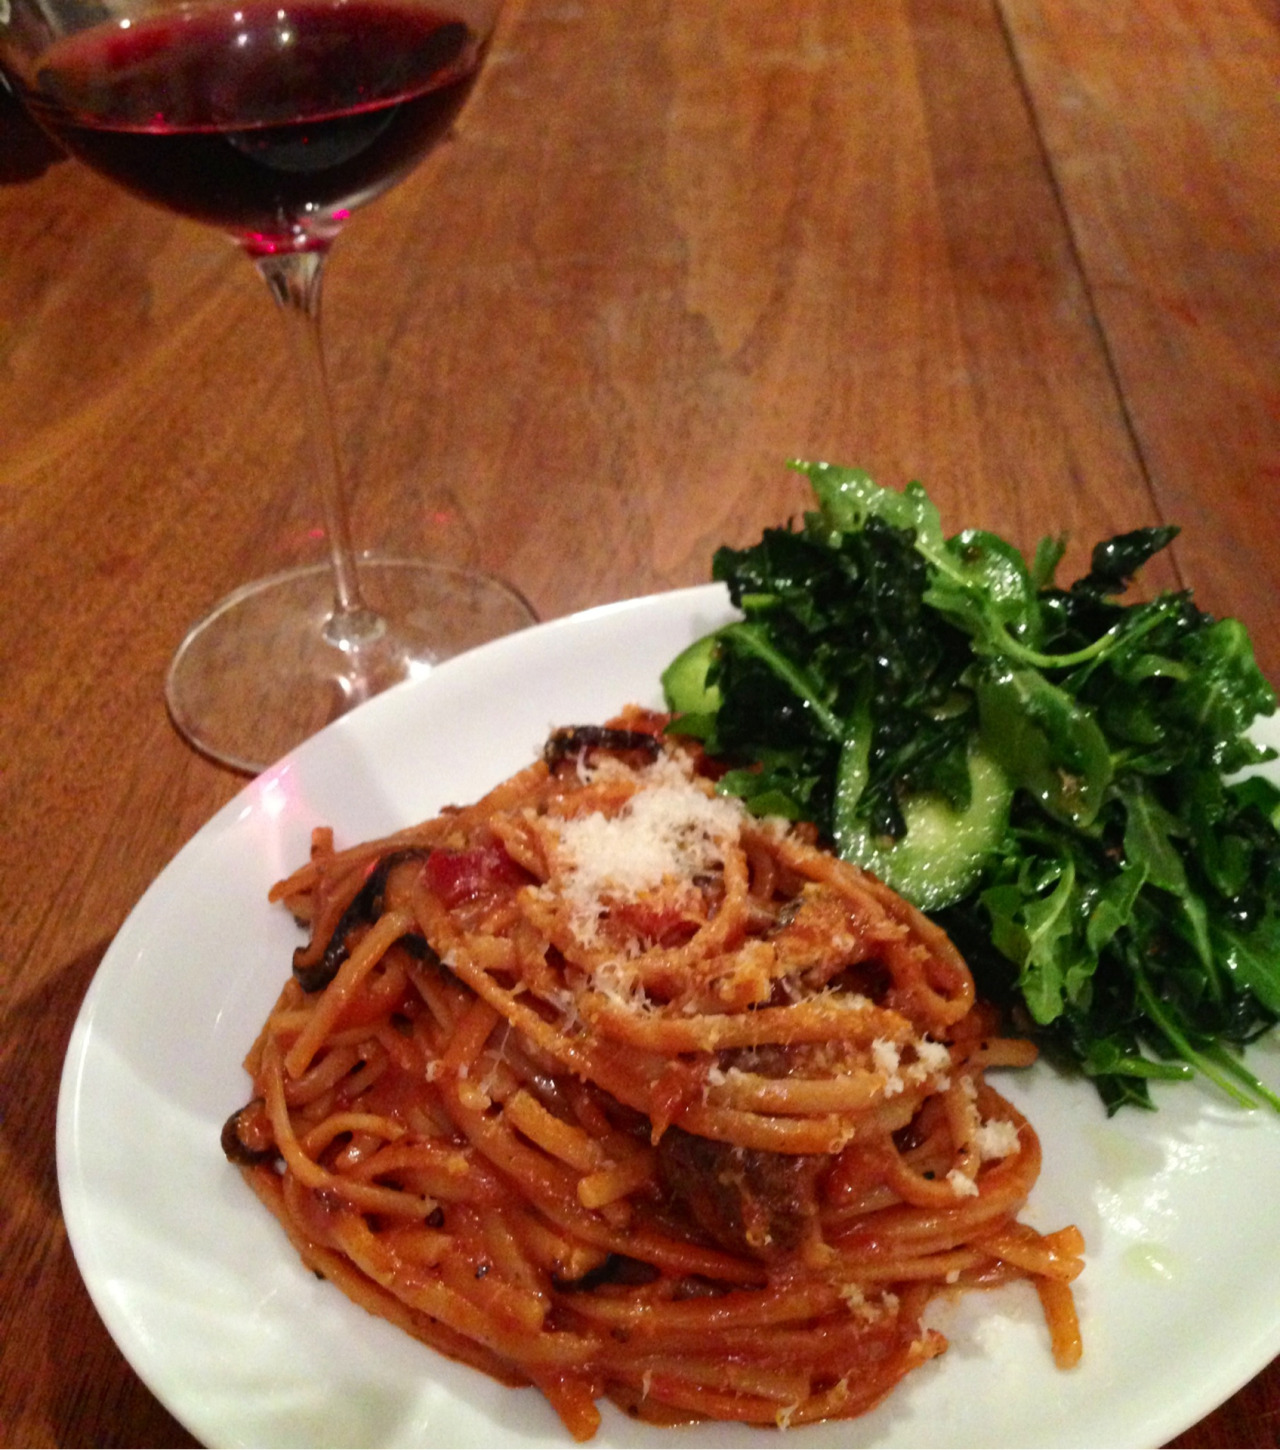 Wild venison ragout with linguine and a kale and arugula salad.